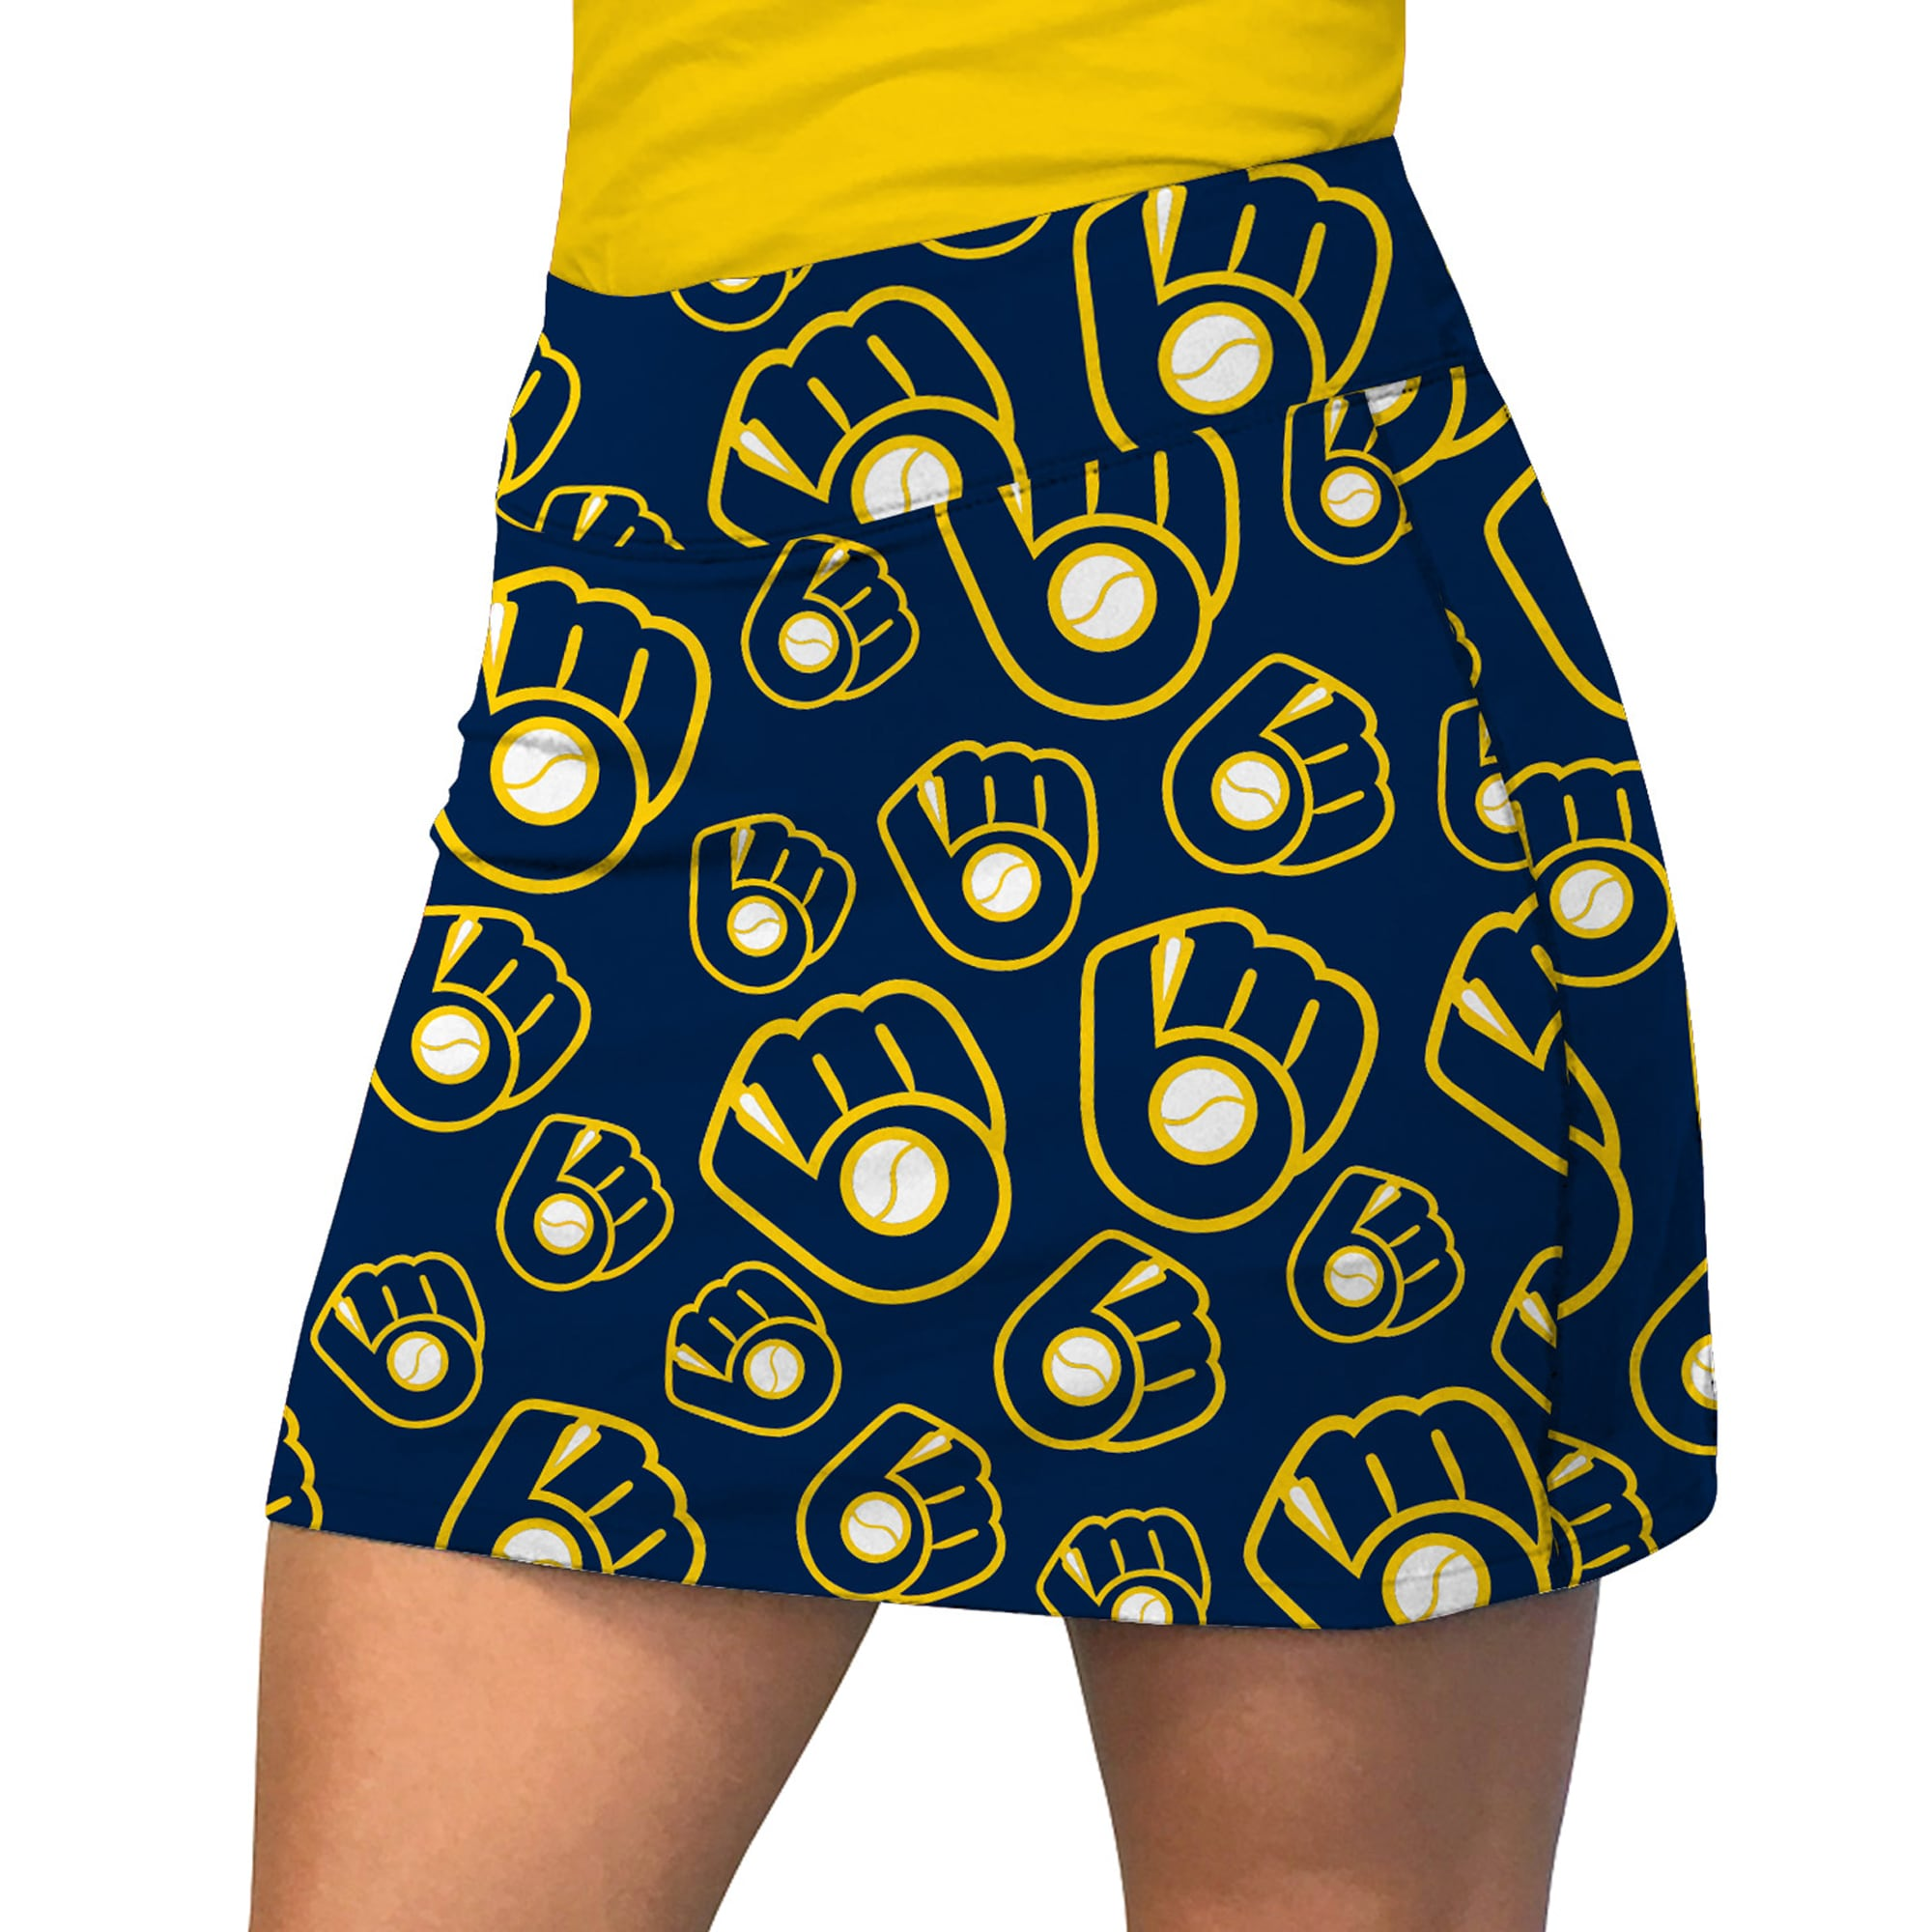 Milwaukee Brewers Loudmouth Women's Retro Cooperstown Active Skort - Blue/Yellow